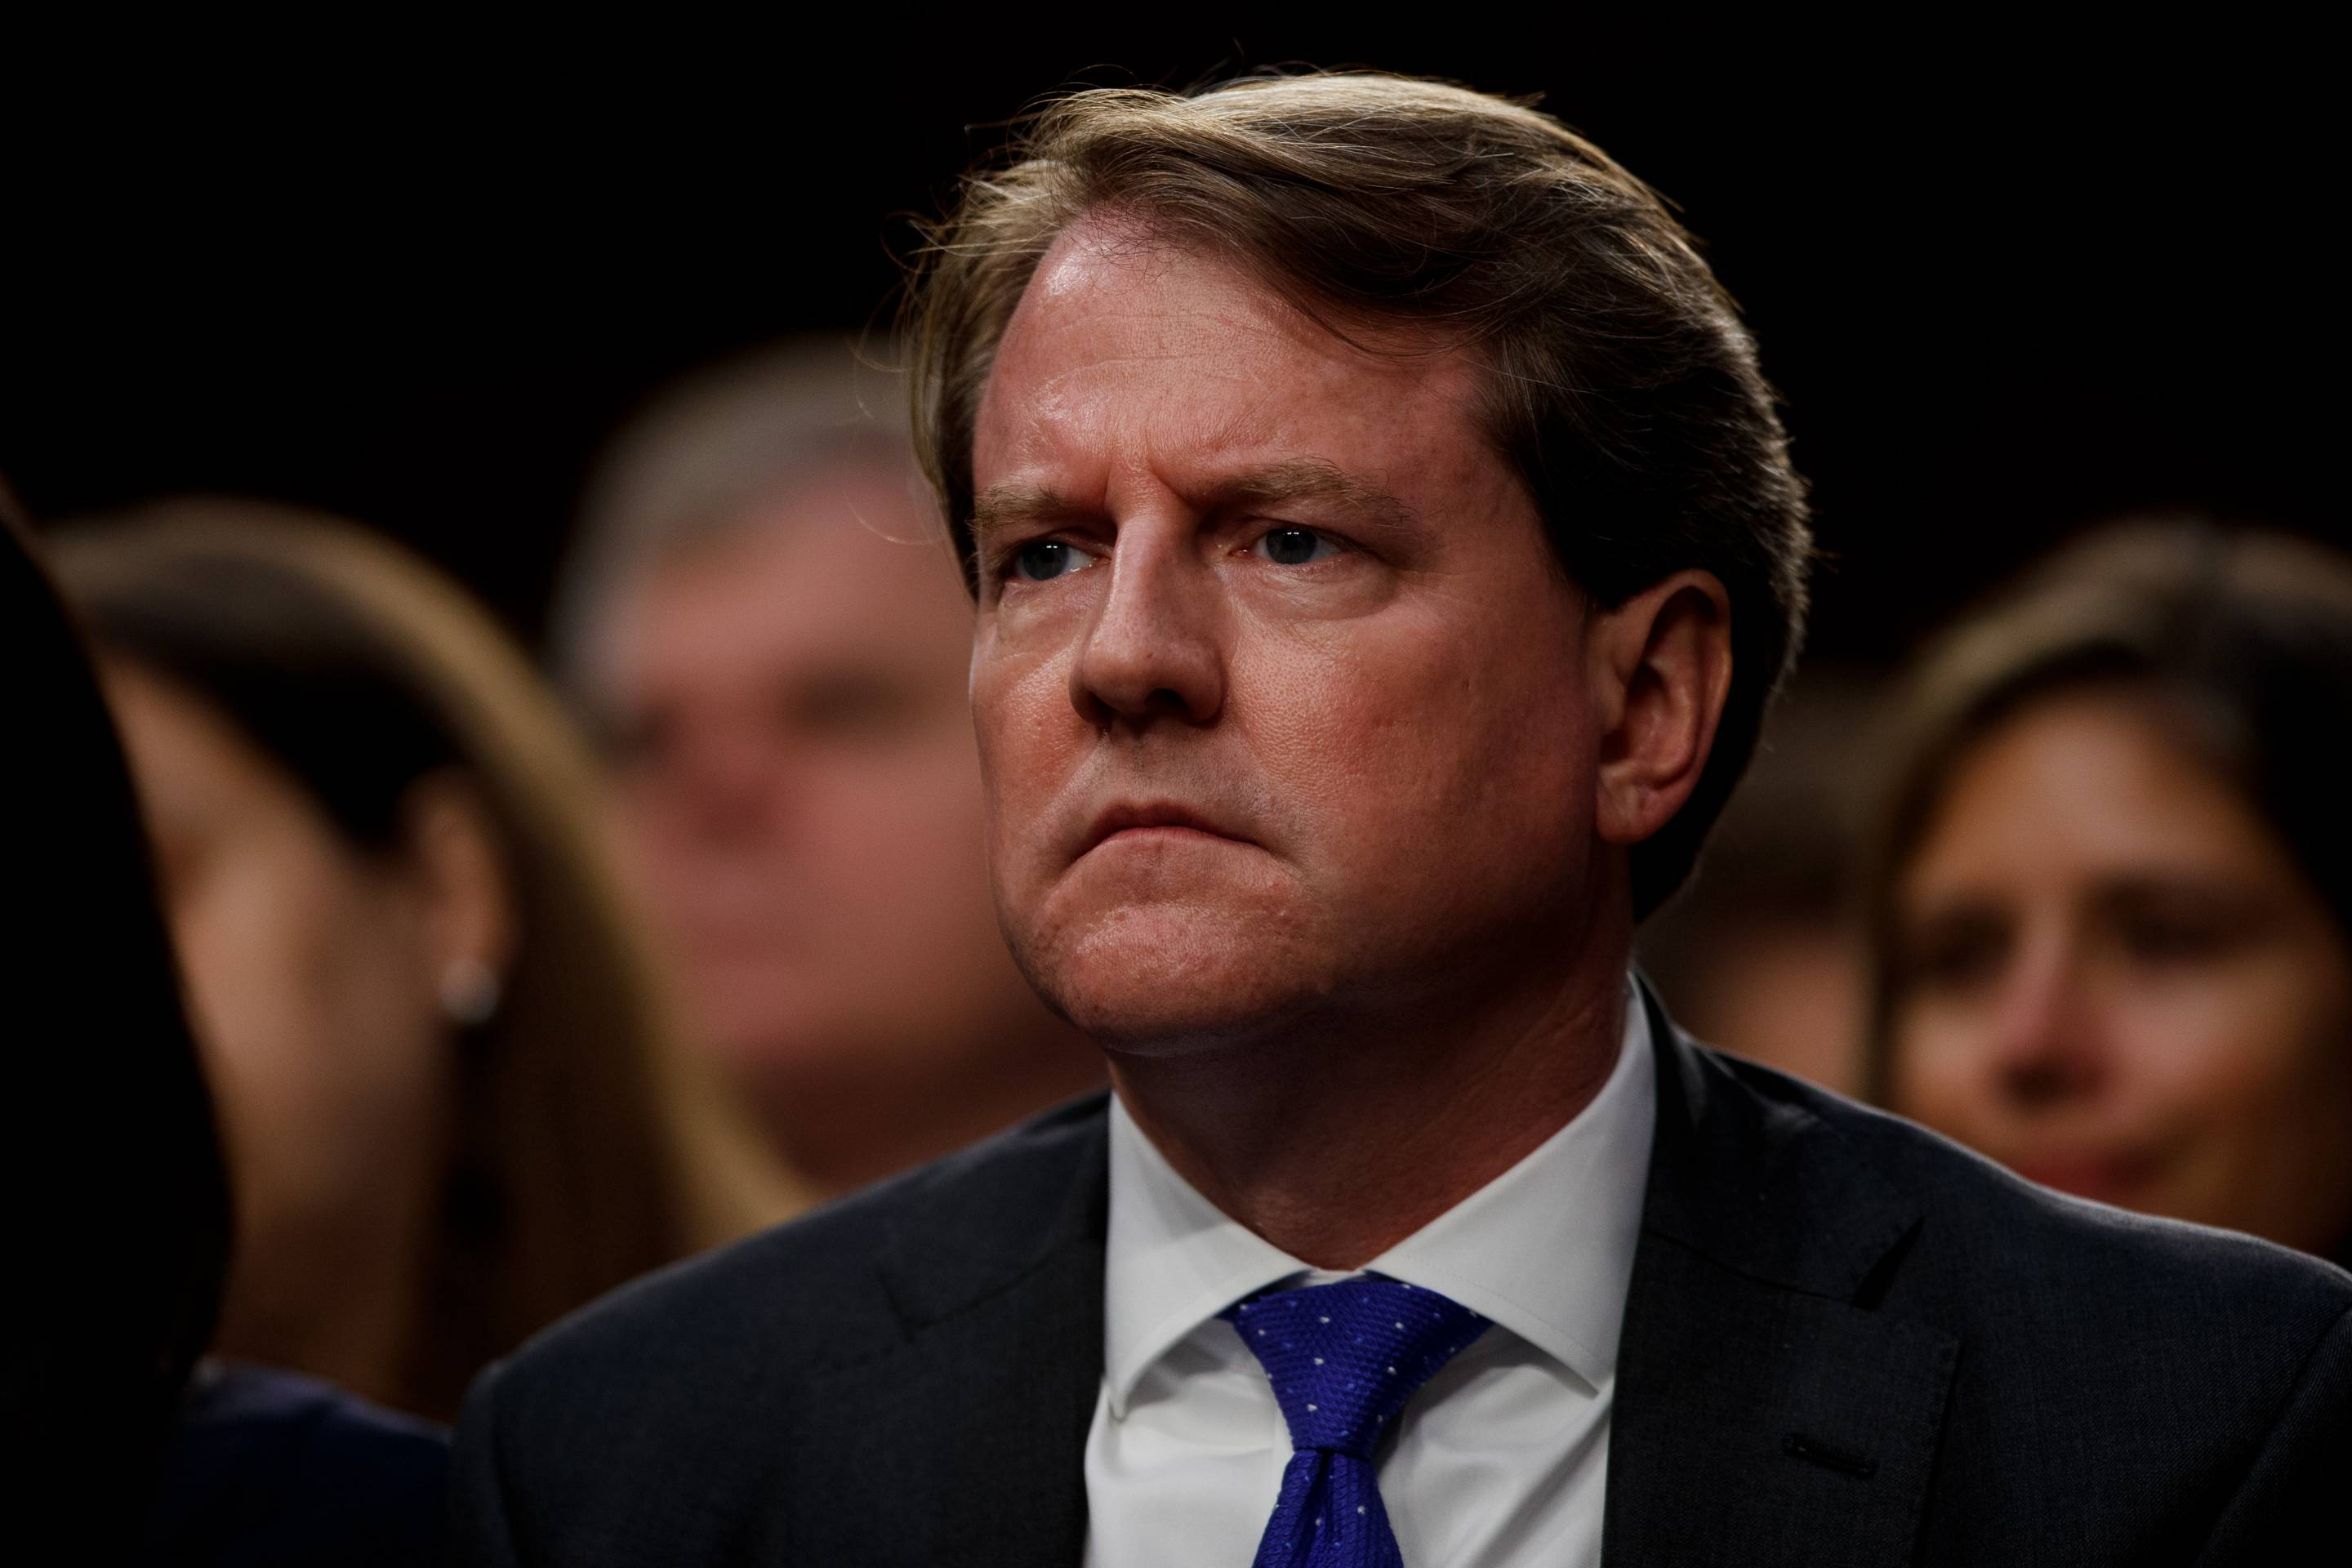 U.S.-WASHINGTON D.C.-DON MCGAHN-SUBPOENA